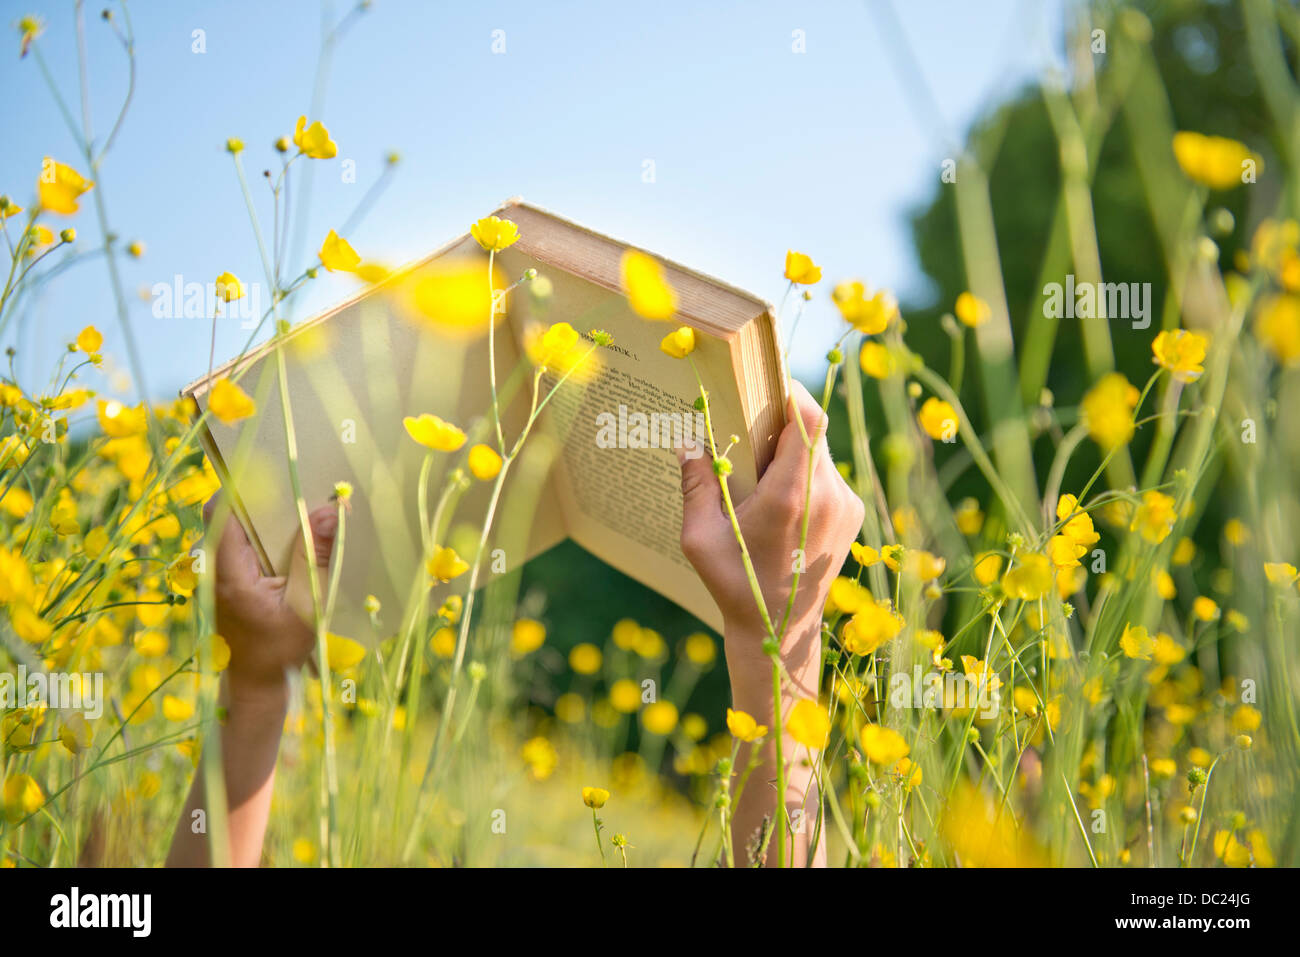 Cropped shot of boy's hands holding book in long grass - Stock Image